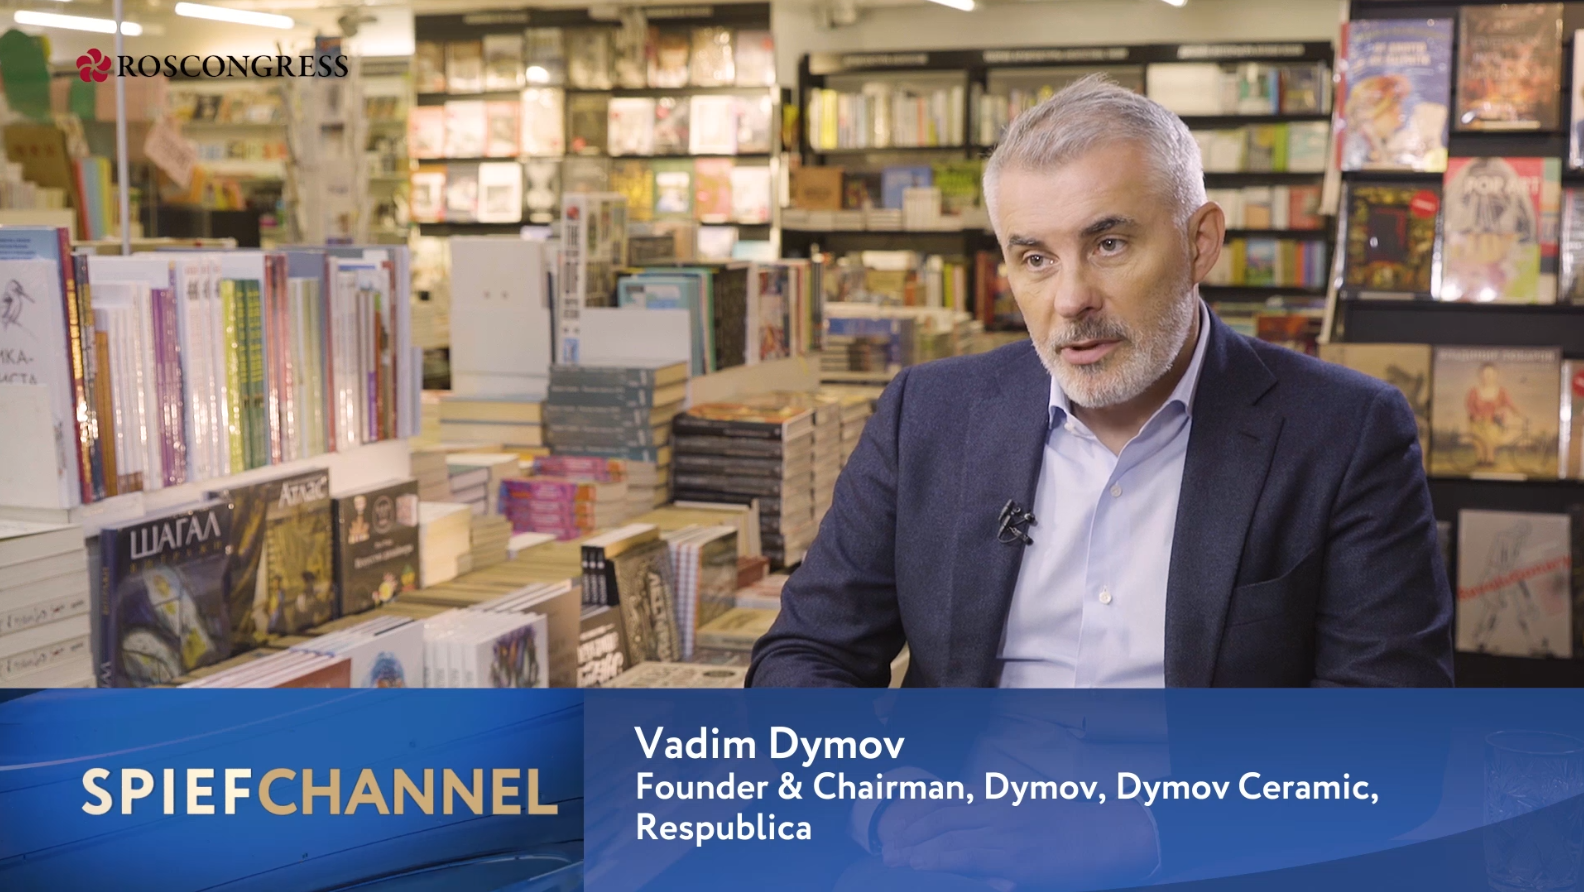 Vadim Dymov, Founder & Owner, Dymov Group of companies